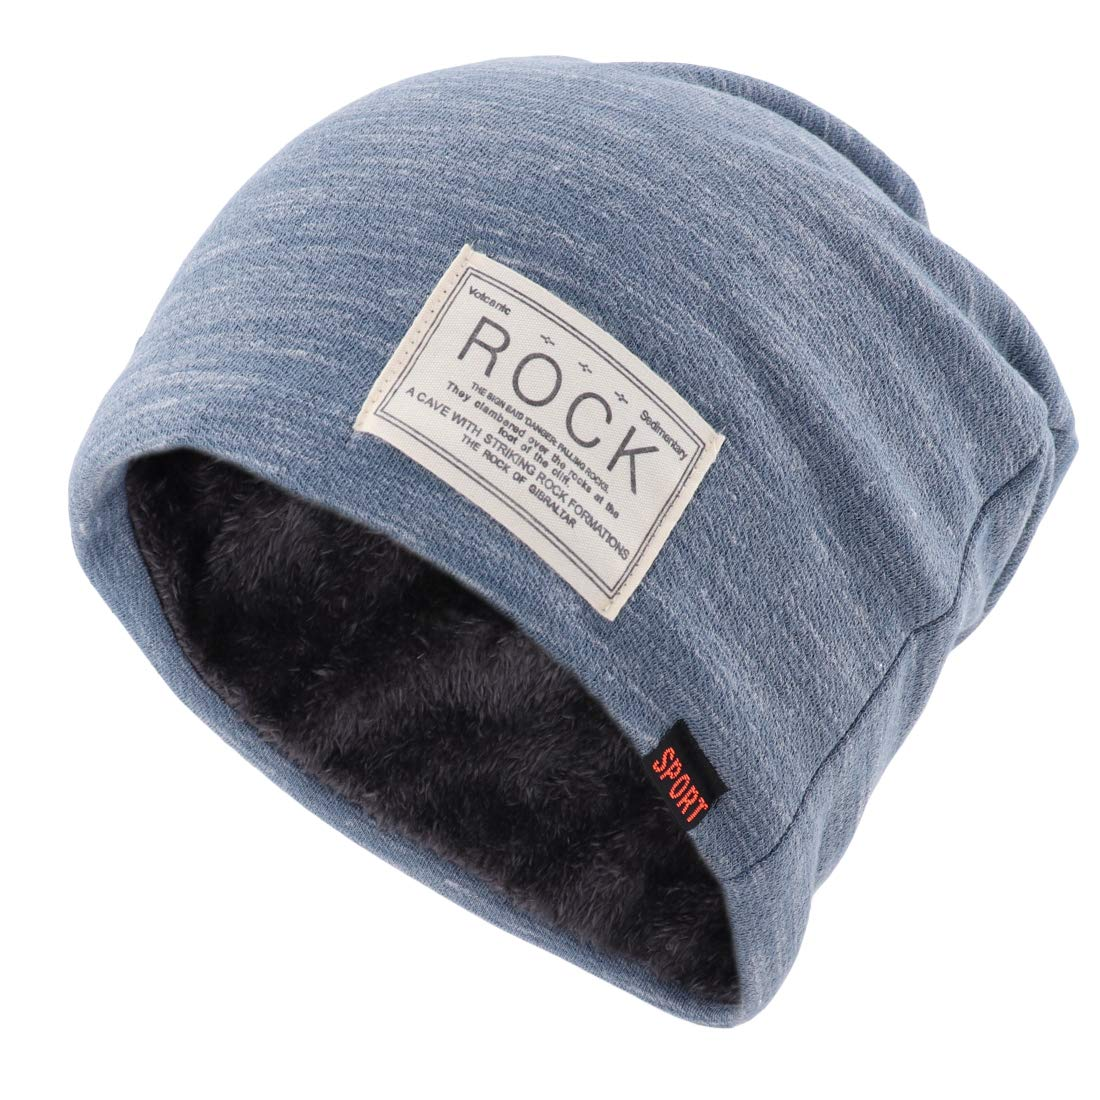 4312b4eb517 Gisdanchz Blue Knit Beanie Baggy Beanie Mens Hipster Sports Winter Outdoor  Soft Warm Toboggan Woolen Baggy